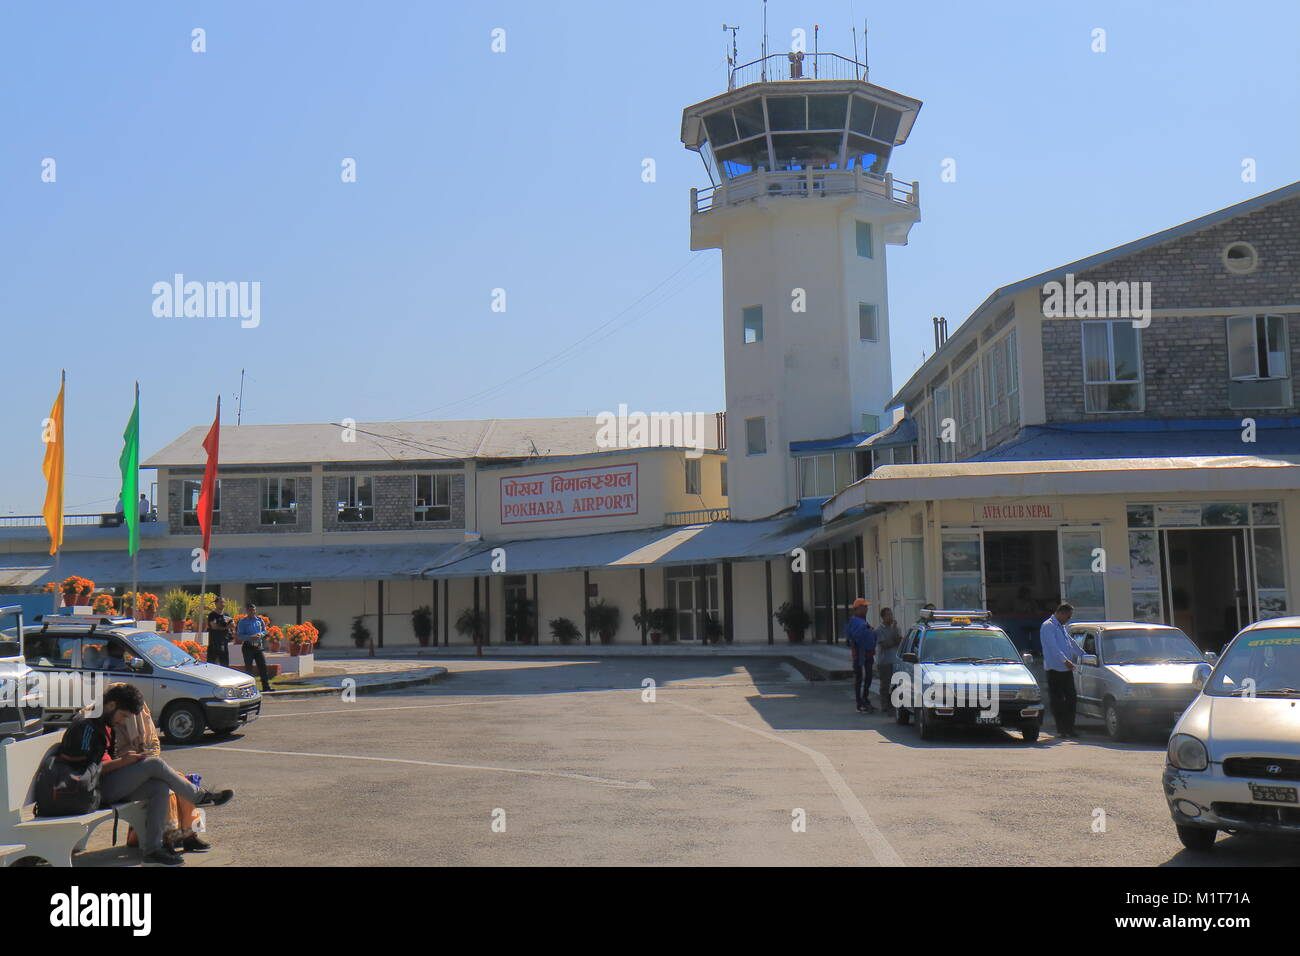 People travel at Pokhara airport in Pokhara Nepal. - Stock Image